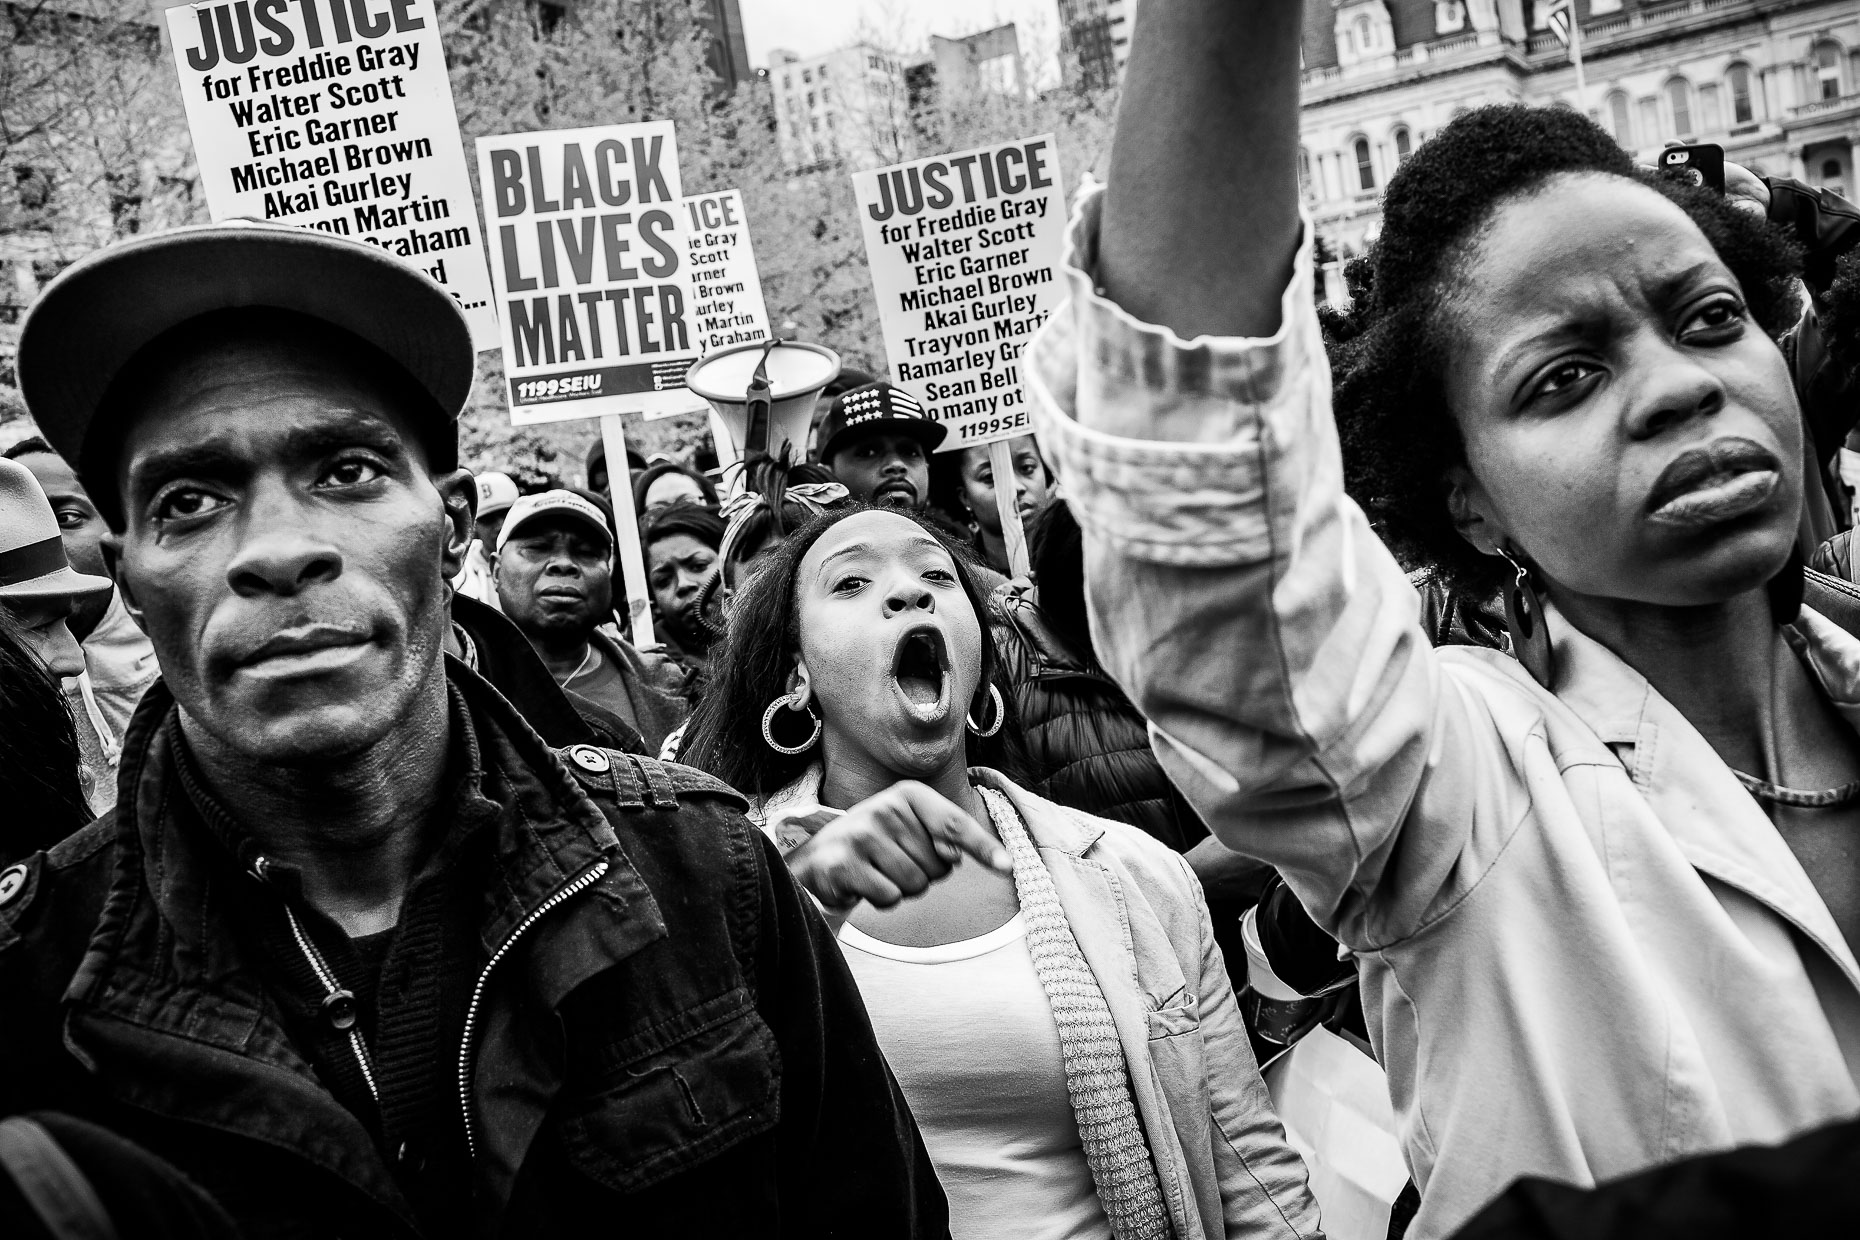 Baltimore Responds - The Baltimore Uprising - Photojournalism 03